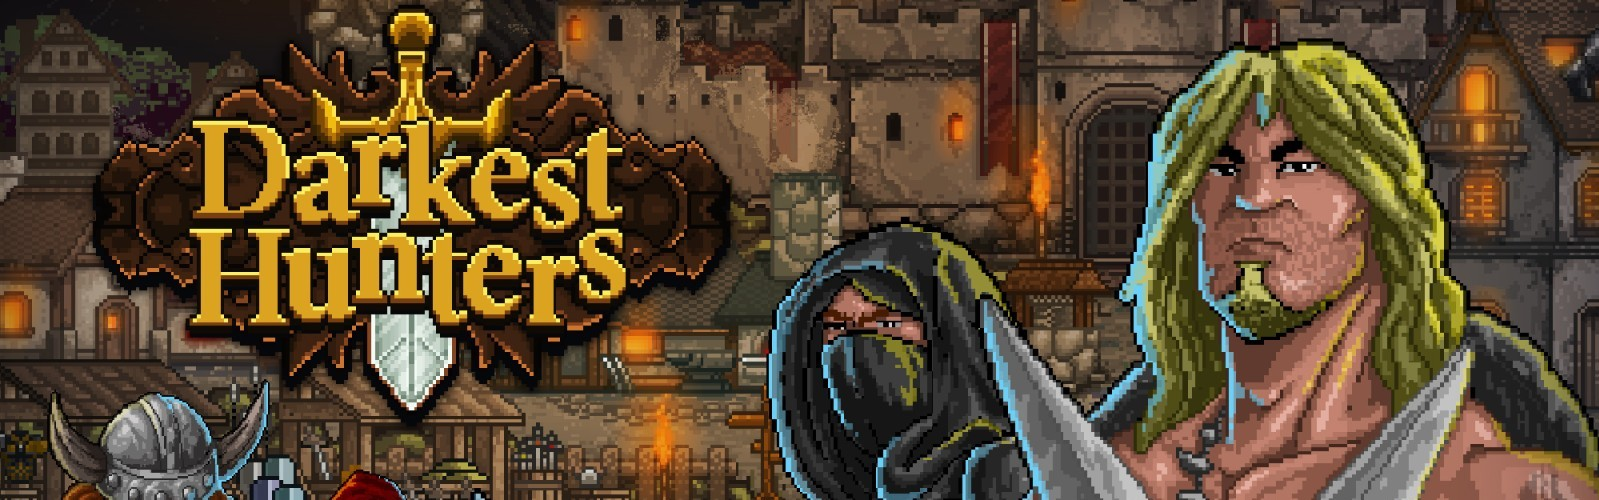 Darkest Hunters Steam Key GLOBAL